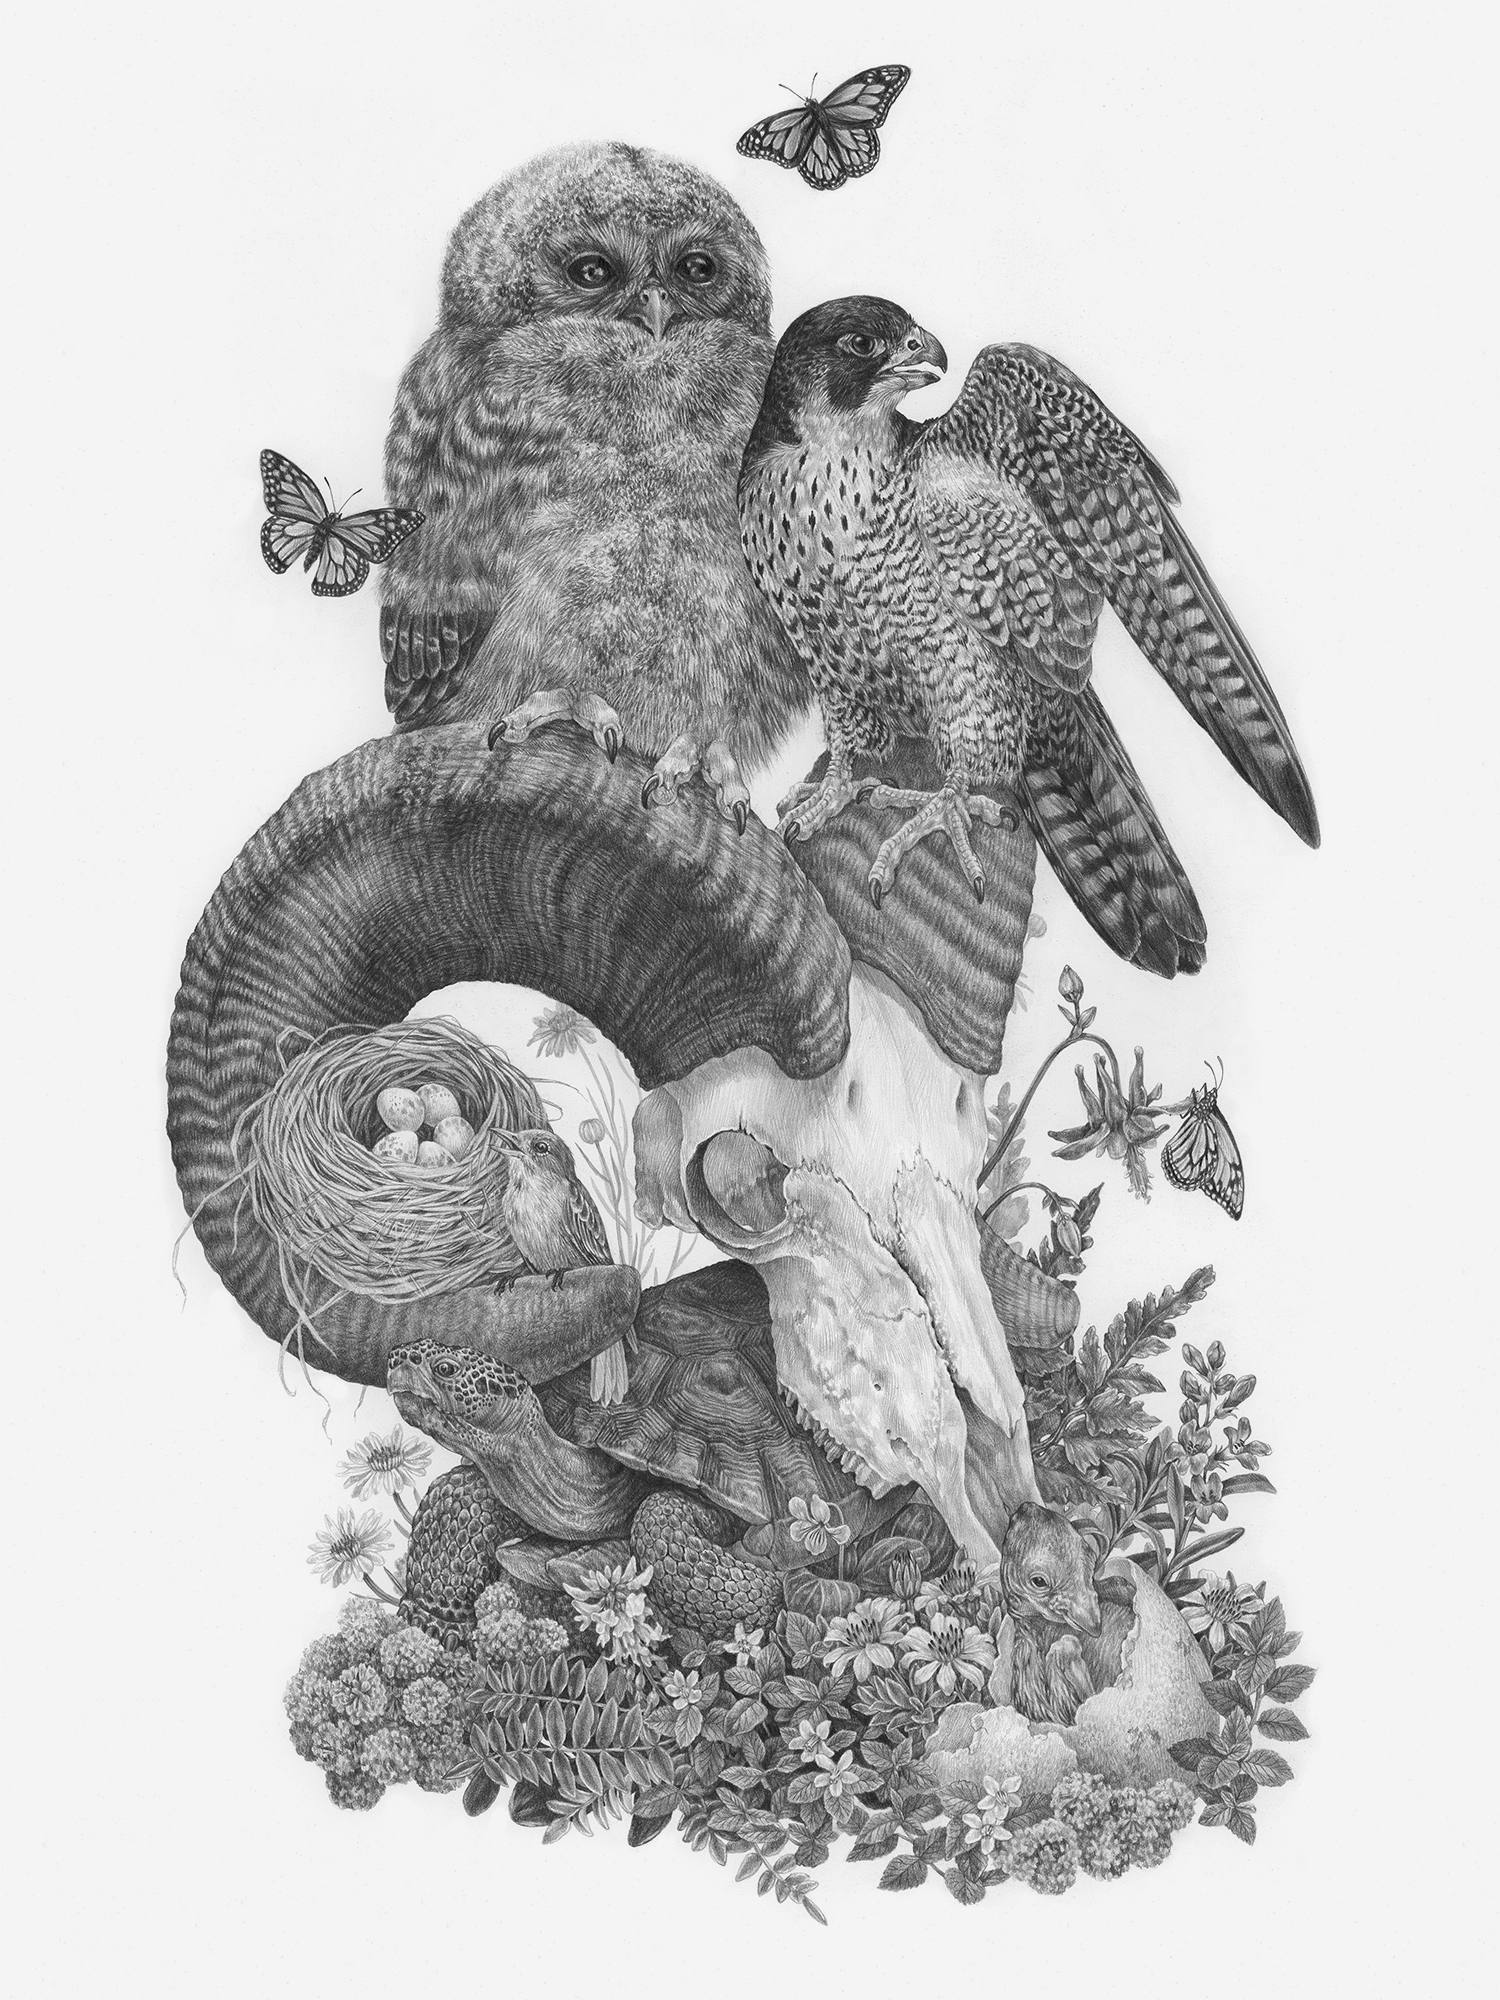 "On The Brink, 18"" x 24"", Graphite on paper, 2019  Sold  SPECIES DEPICTED  Species that were once, or still are at risk within Zion National Park: Mexican Spotted Owlet, Peregrine Falcon, Condor hatchling, Southwestern Willow Flycatcher, Mojave Desert Tortoise, Monarch Butterflies, and nine sensitive plant species."